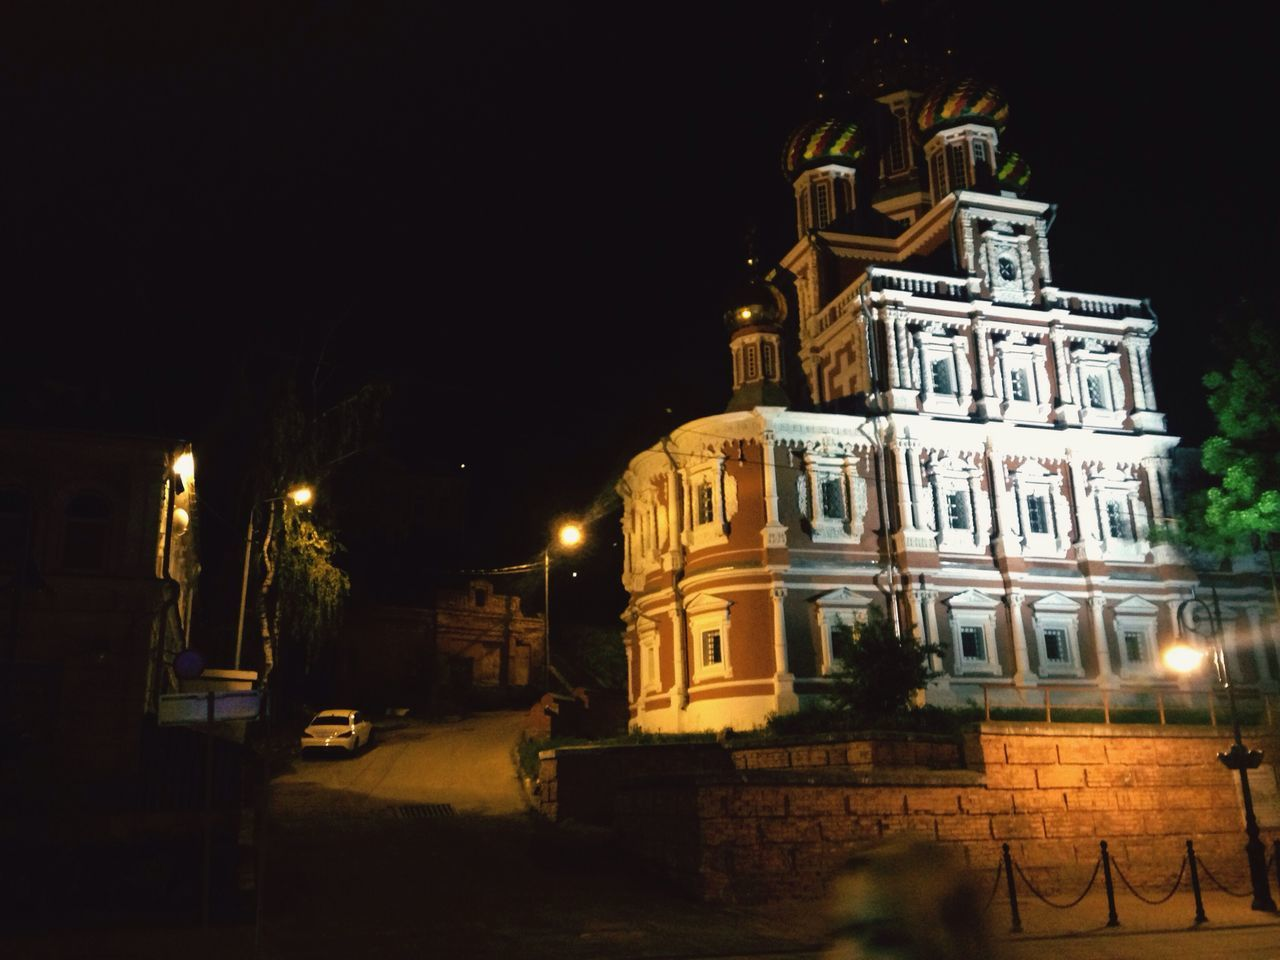 Novgorod Architecture Building Exterior Built Structure Night Illuminated Dark Outdoors Sky History Façade No People